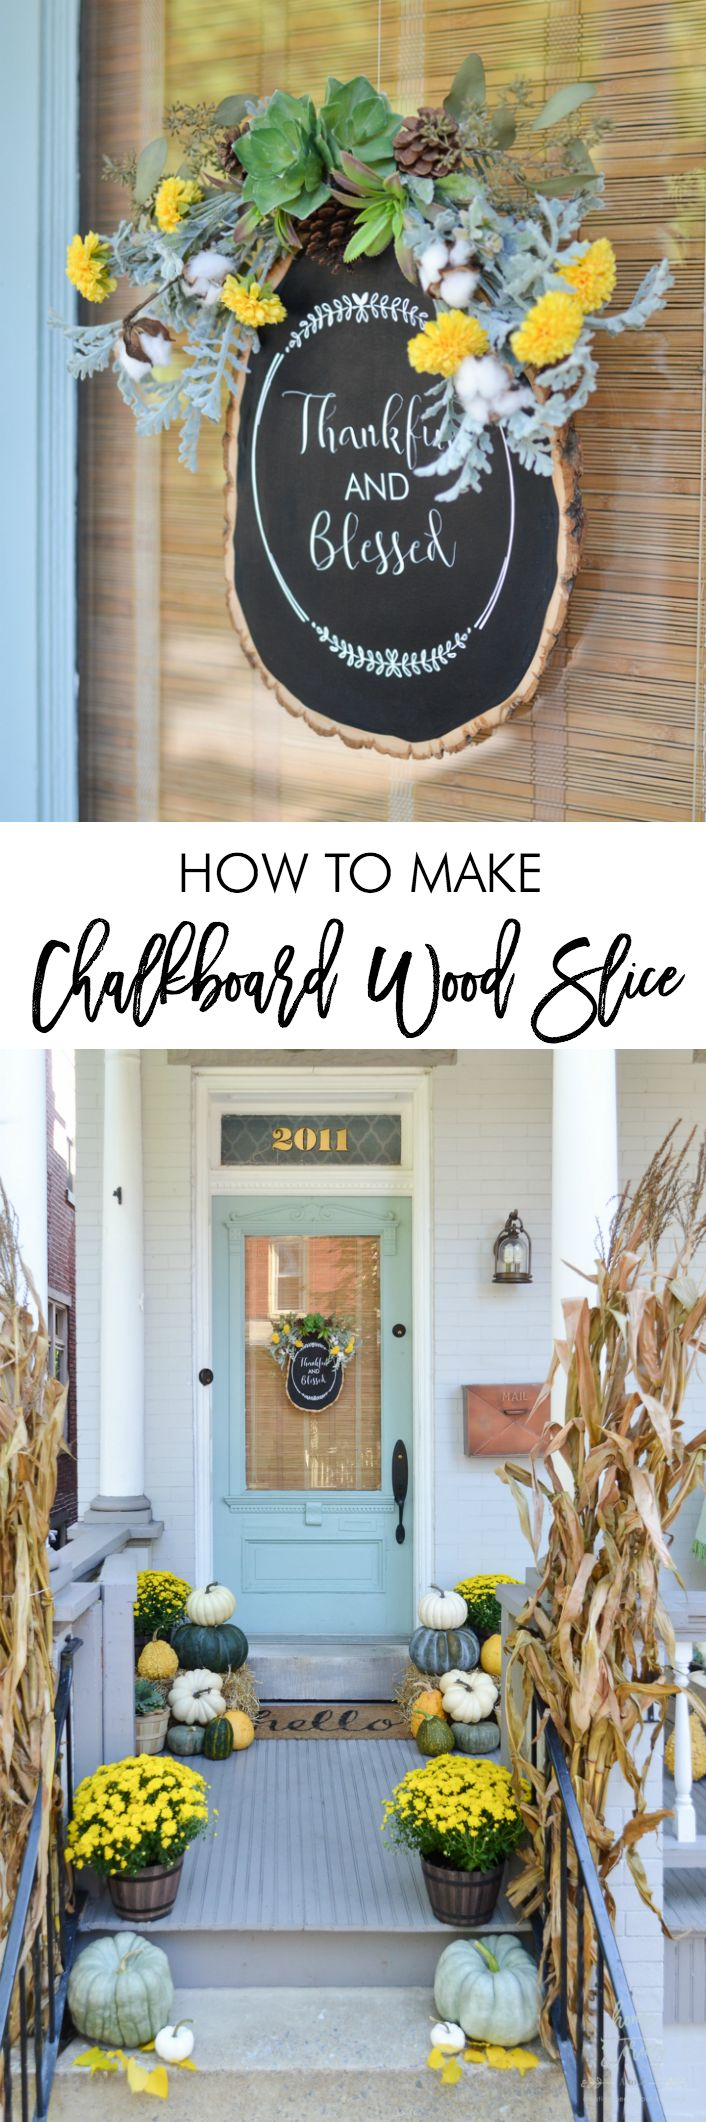 How to make a chalkboard wood slice fall door decor